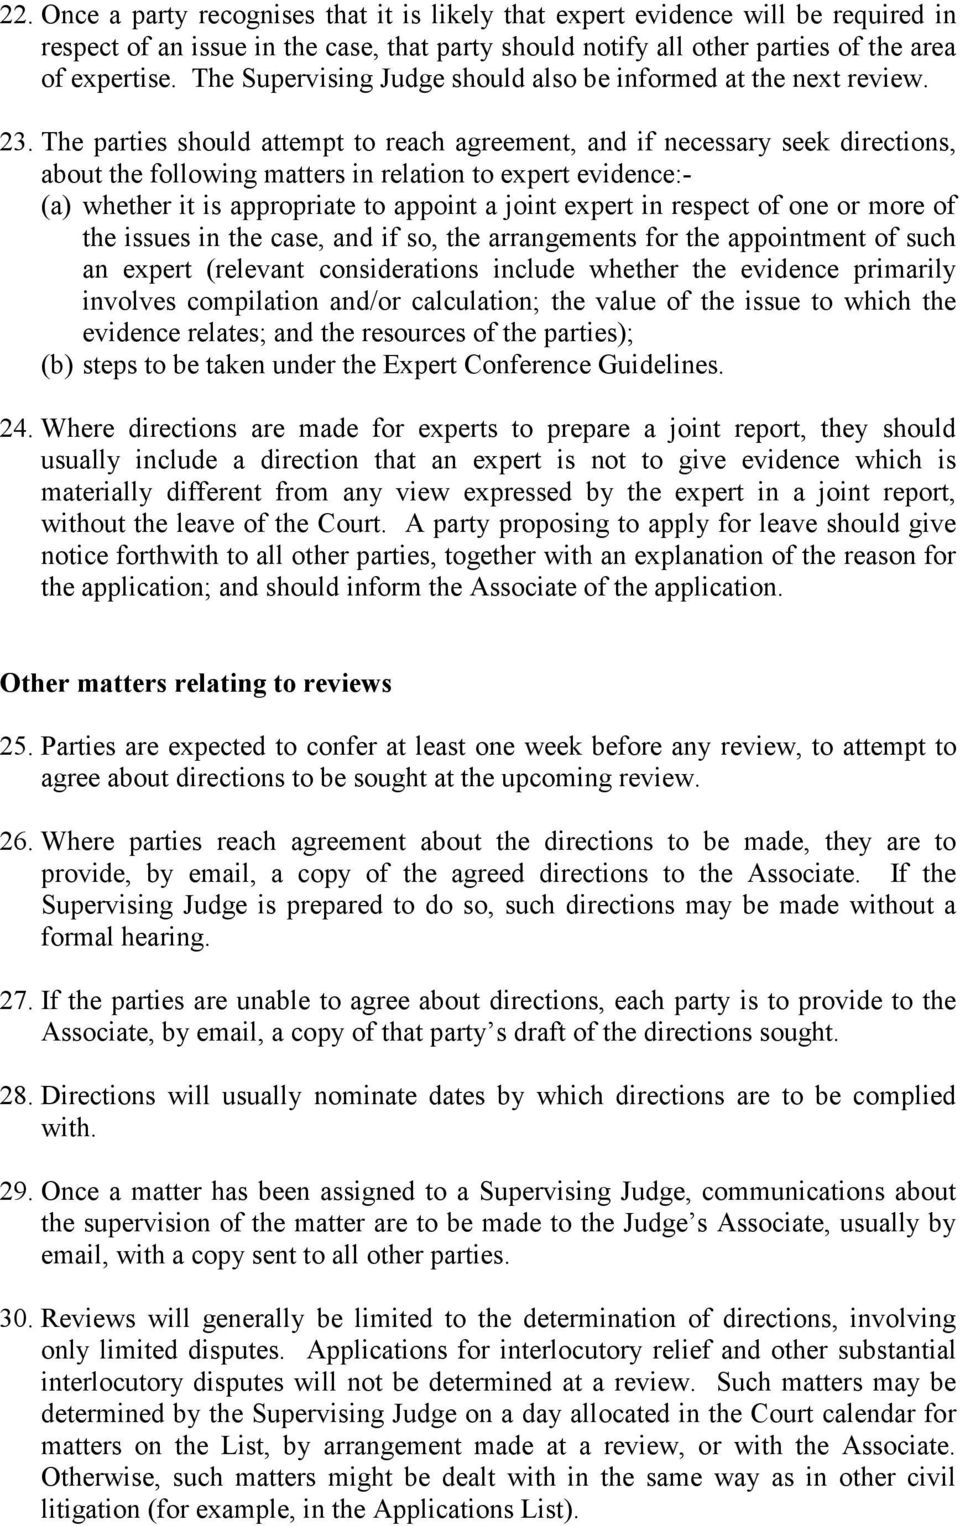 The parties should attempt to reach agreement, and if necessary seek directions, about the following matters in relation to expert evidence:- (a) whether it is appropriate to appoint a joint expert